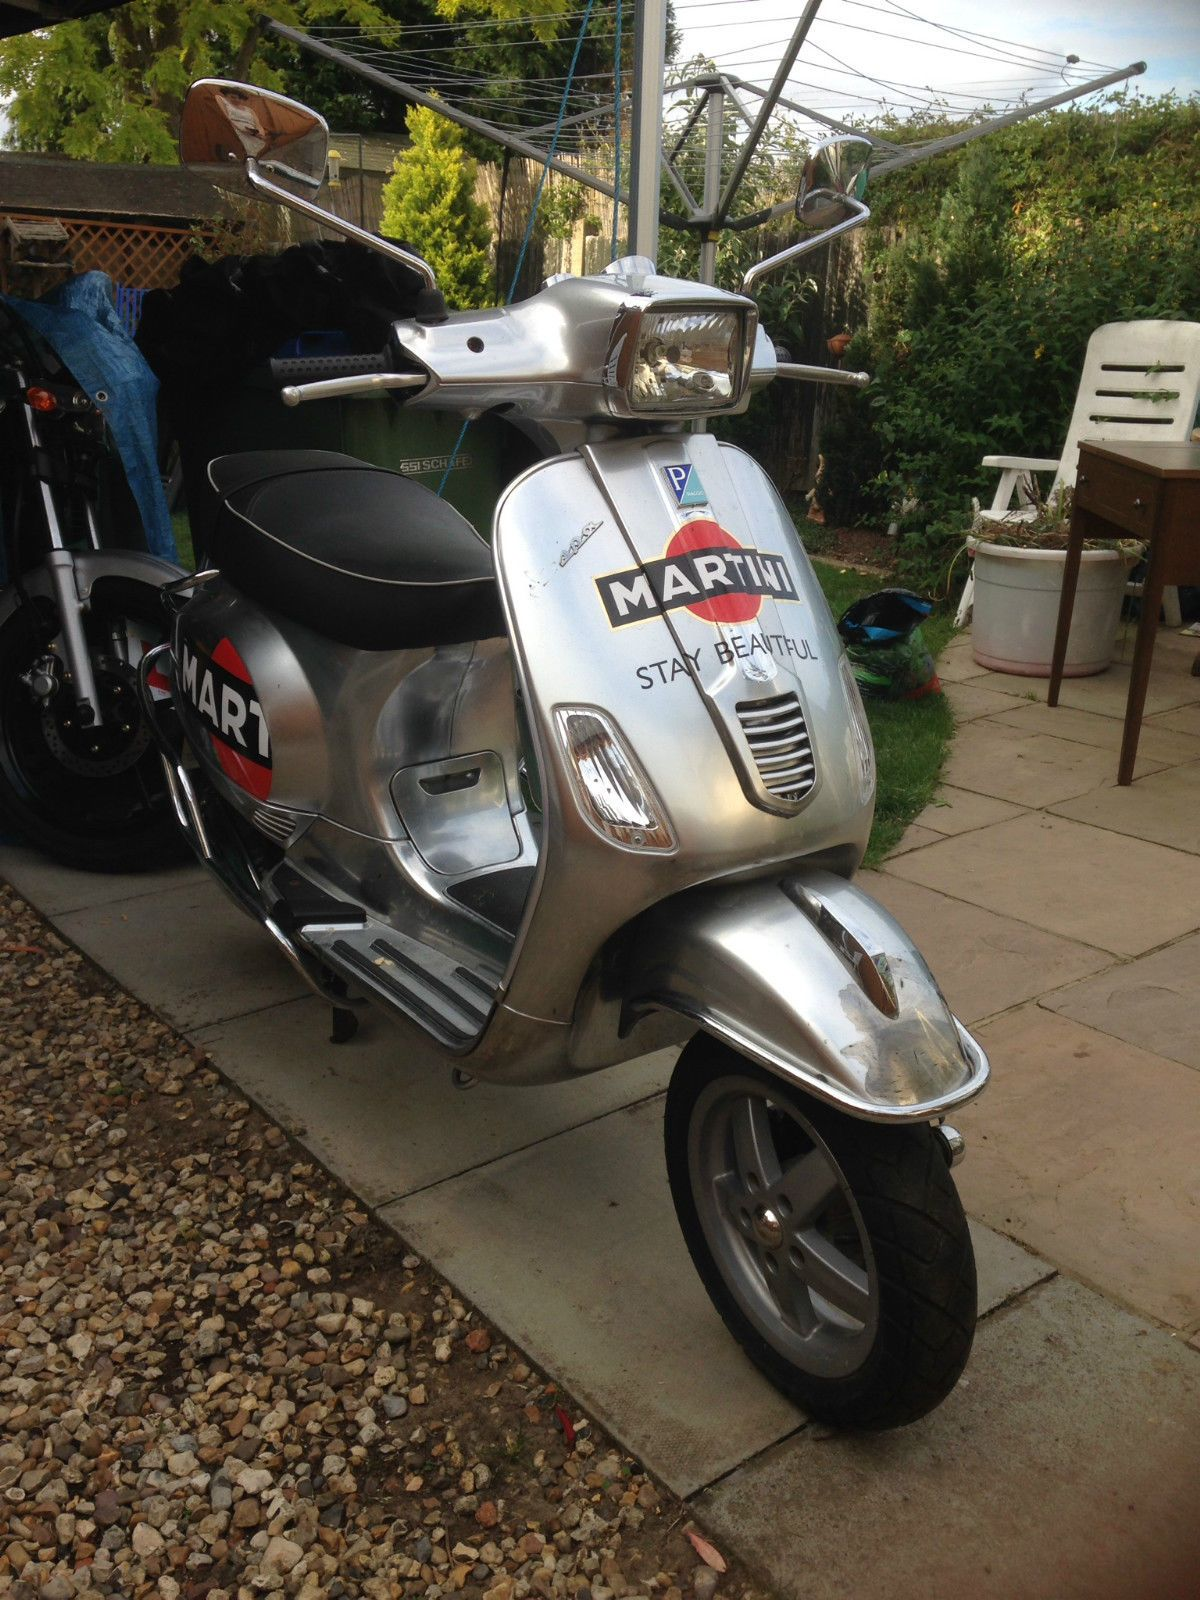 http://www.ebay.co.uk/itm/Piaggio-Vespa-125-S-with-a-Difference-Low ...